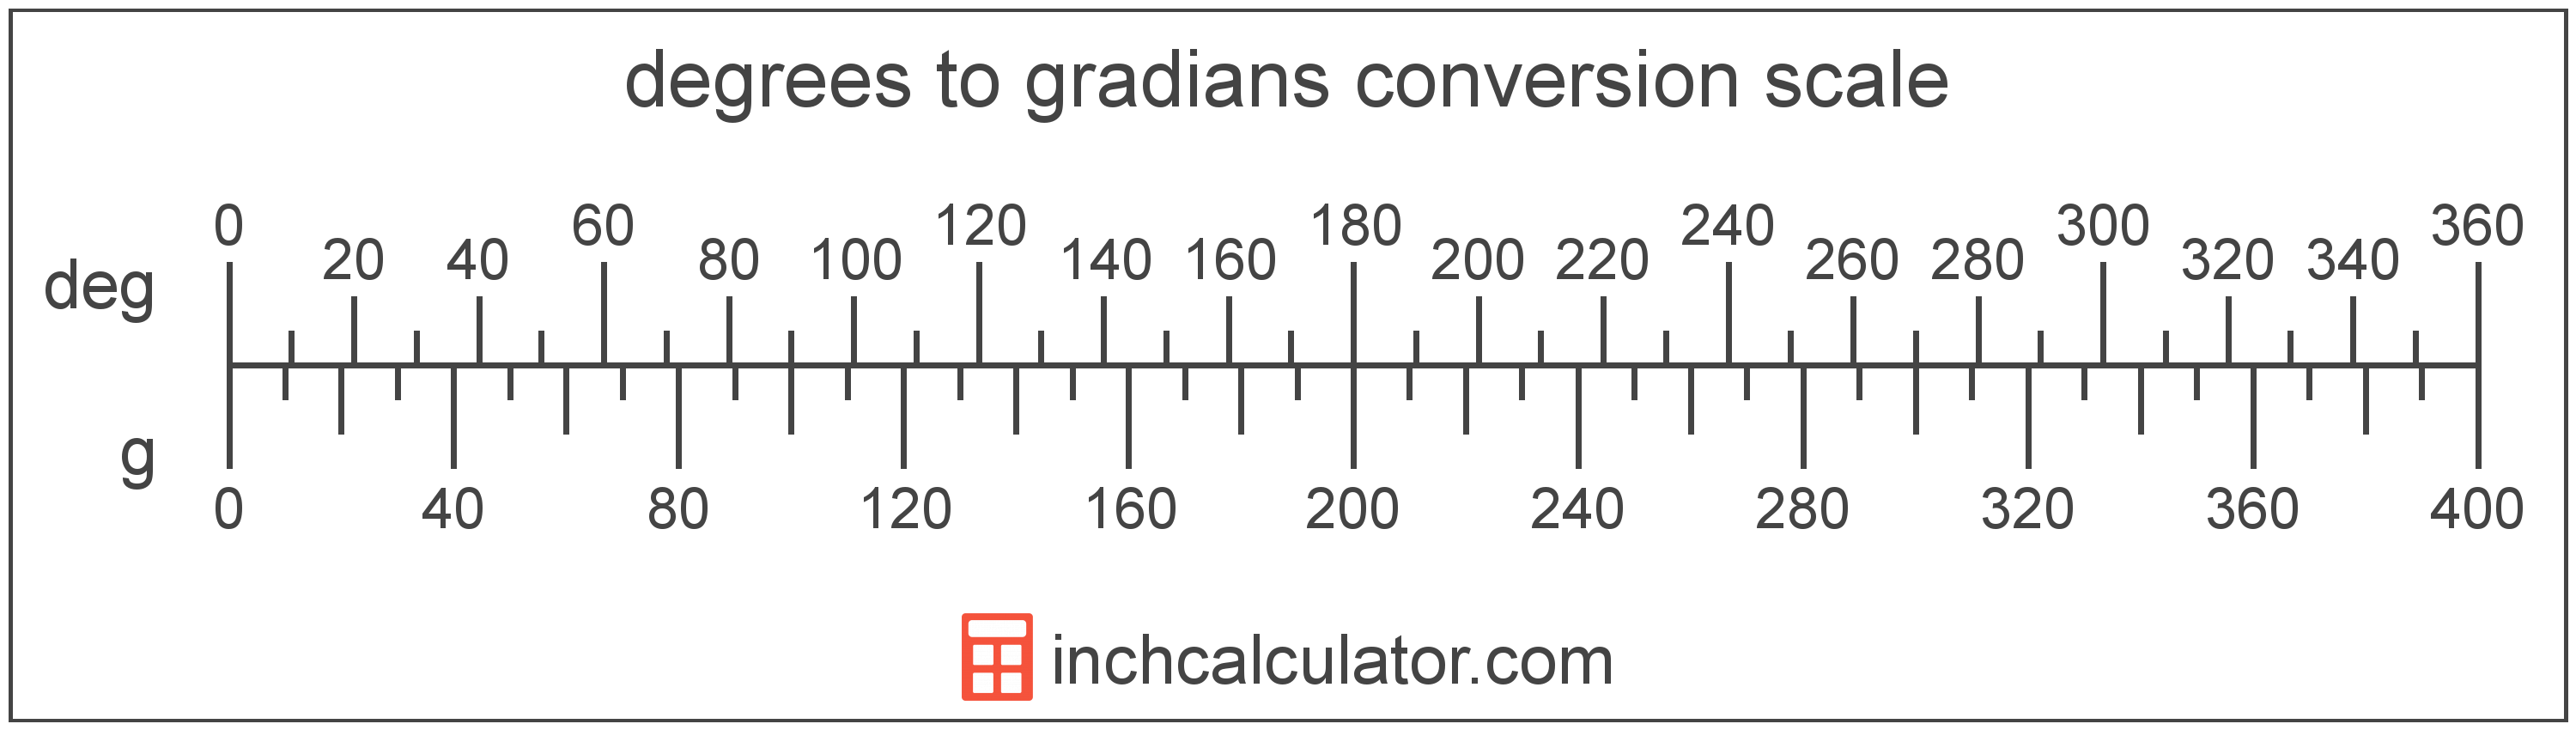 conversion scale showing gradians and equivalent degrees angle values